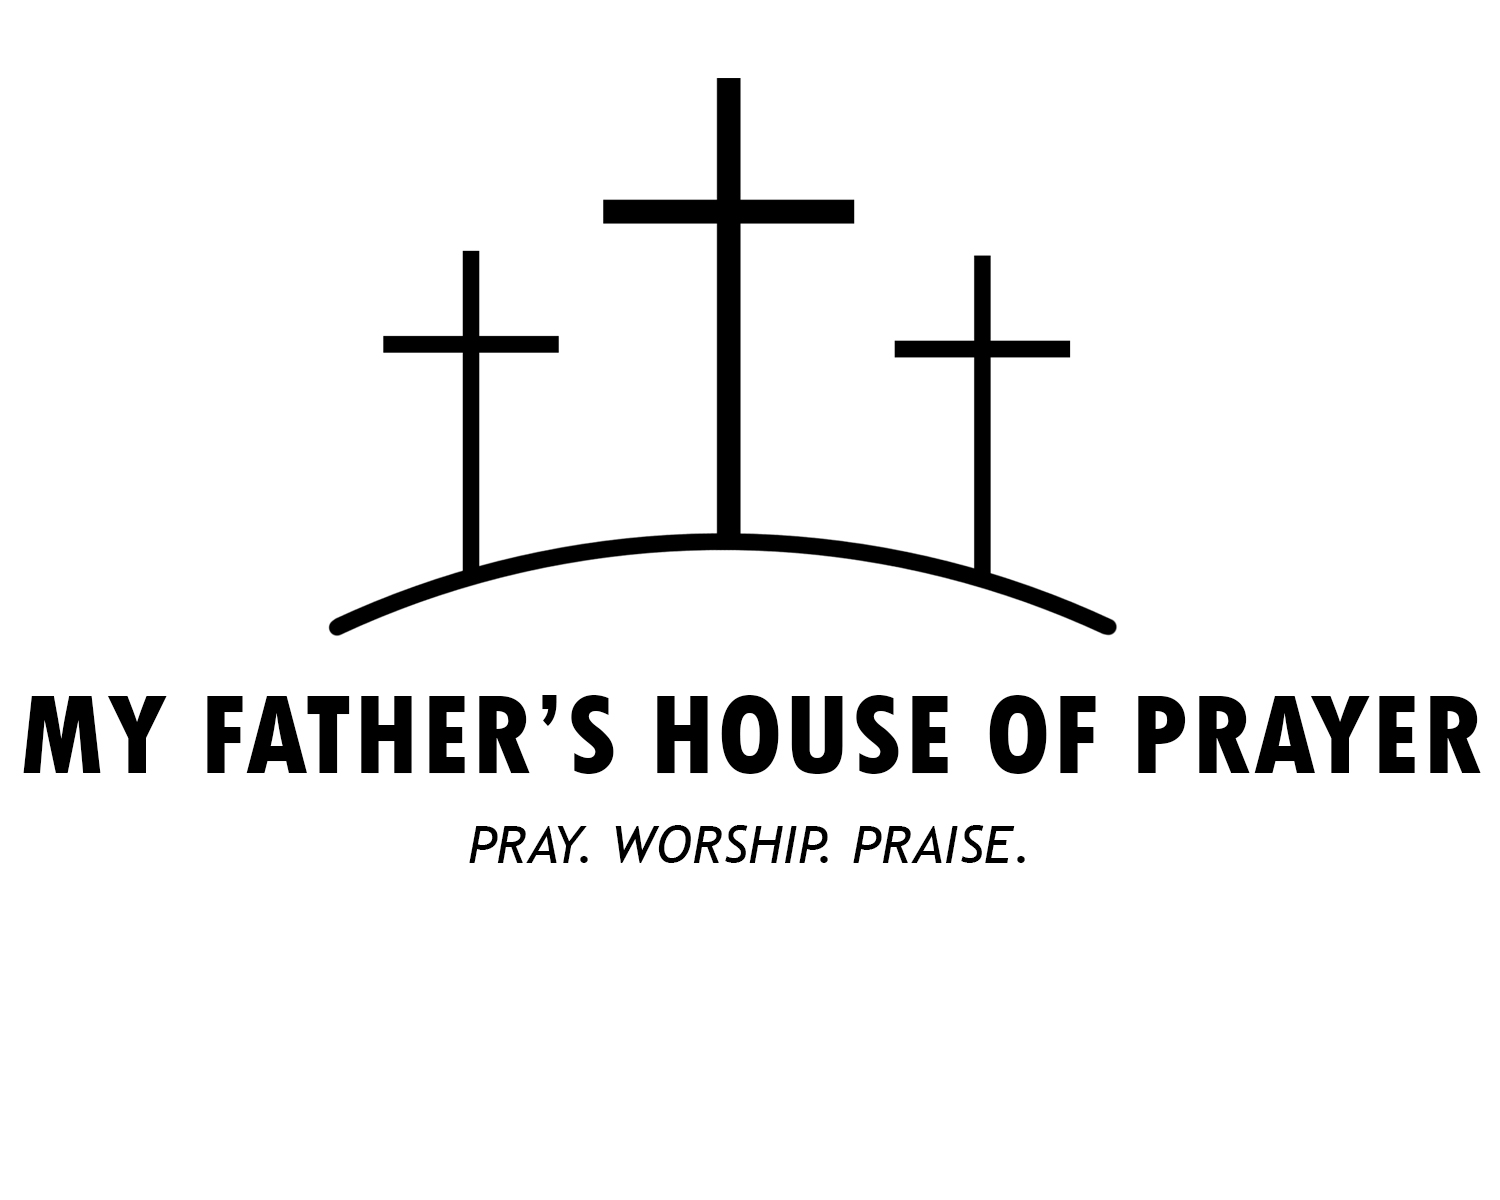 My Father's House of Prayer